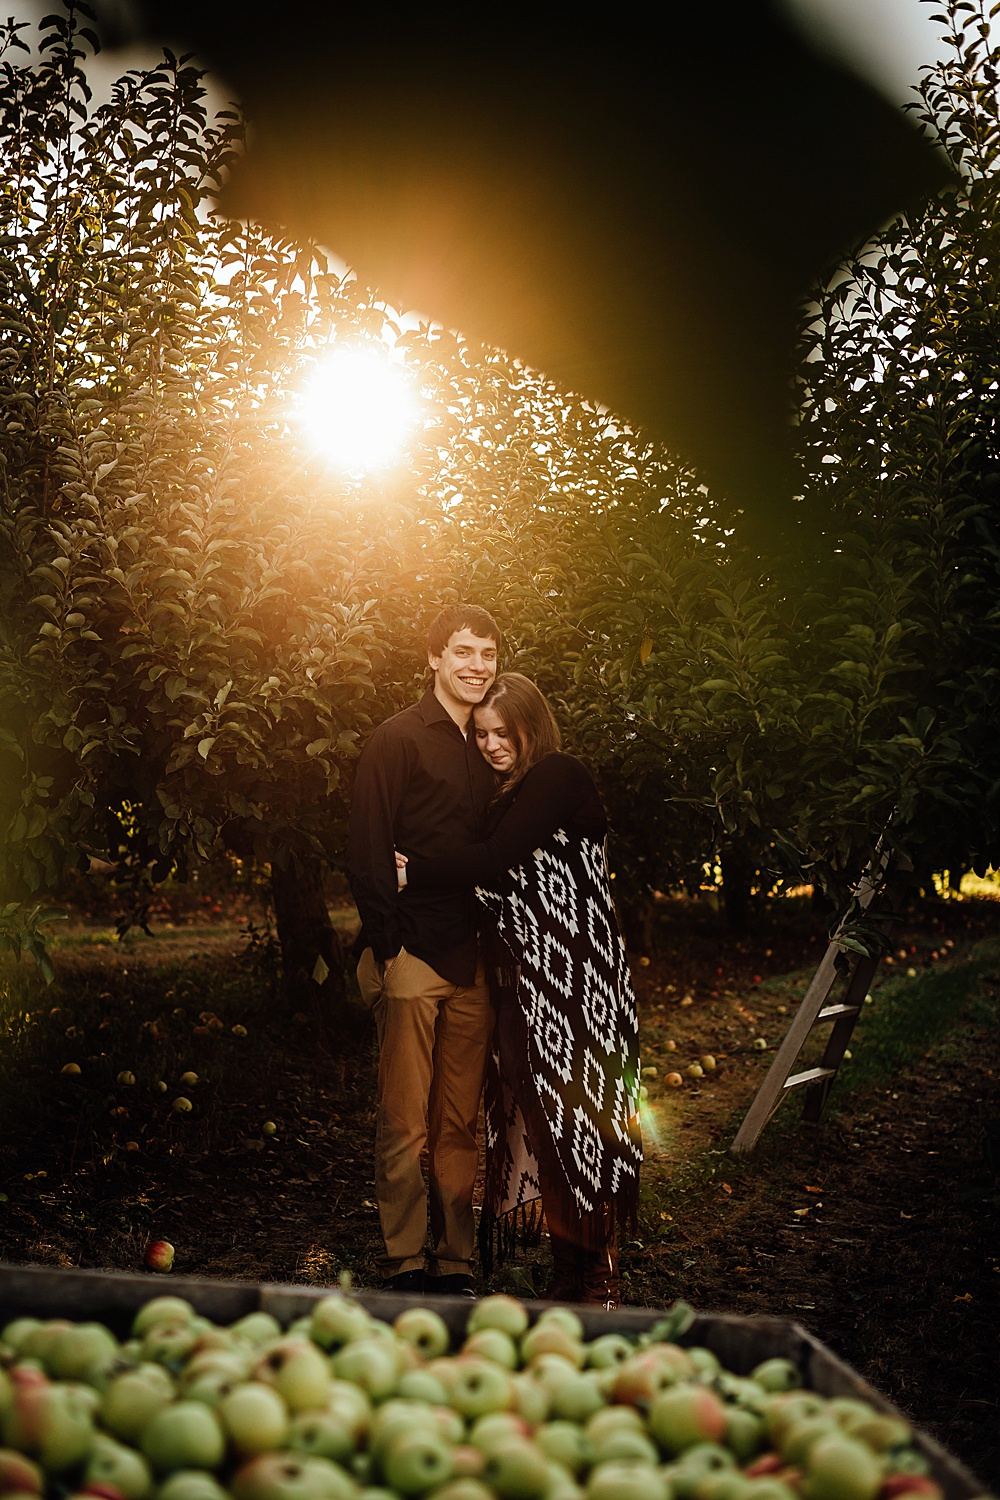 fall_apple_orchard_engagement-photography026.jpg